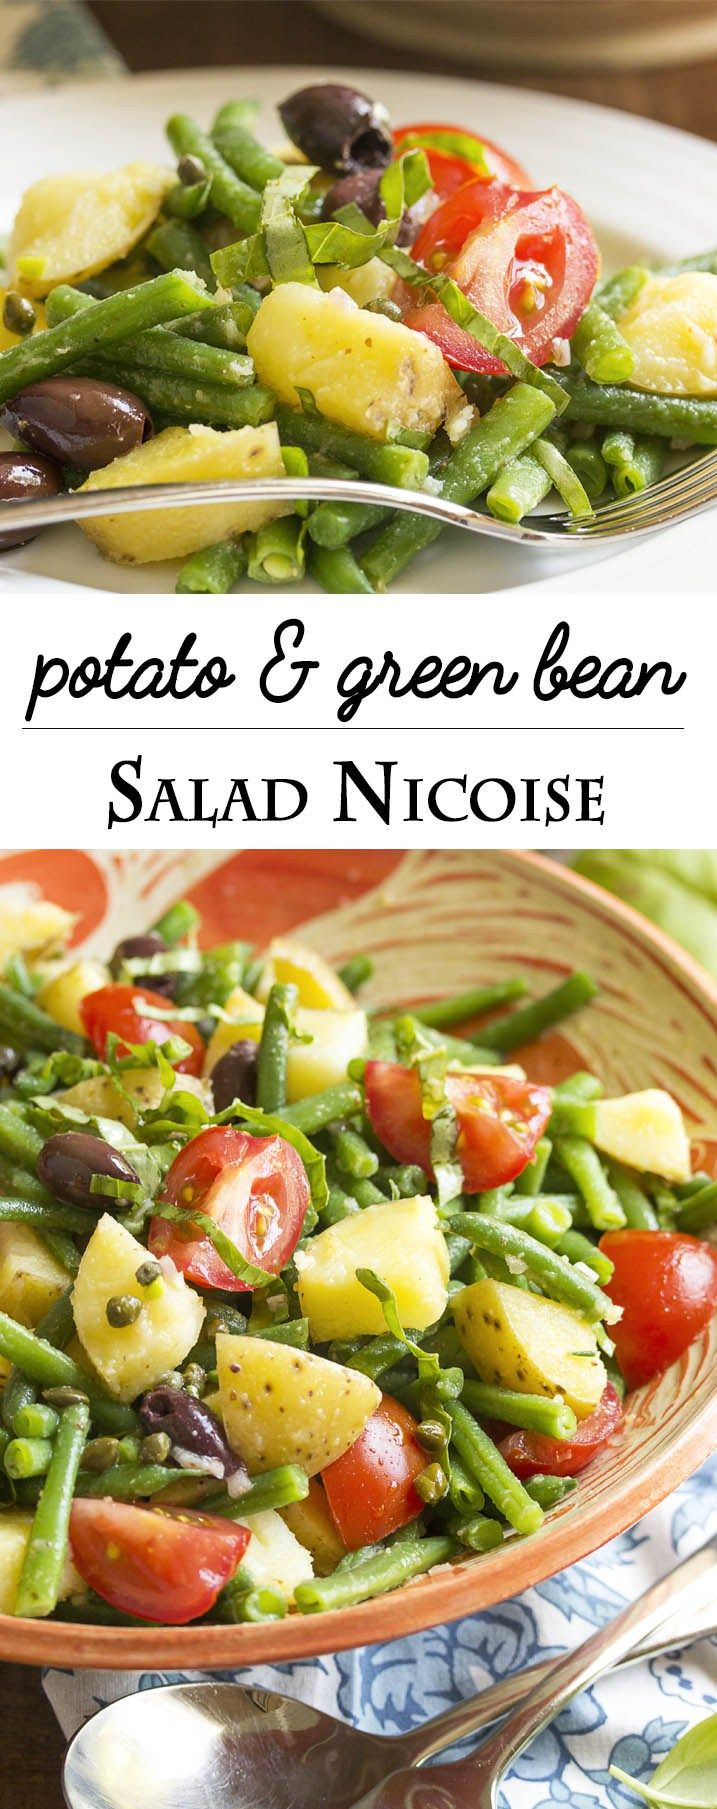 Potato Salad Nicoise - This tasty and relaxed version of salad nicoise ...